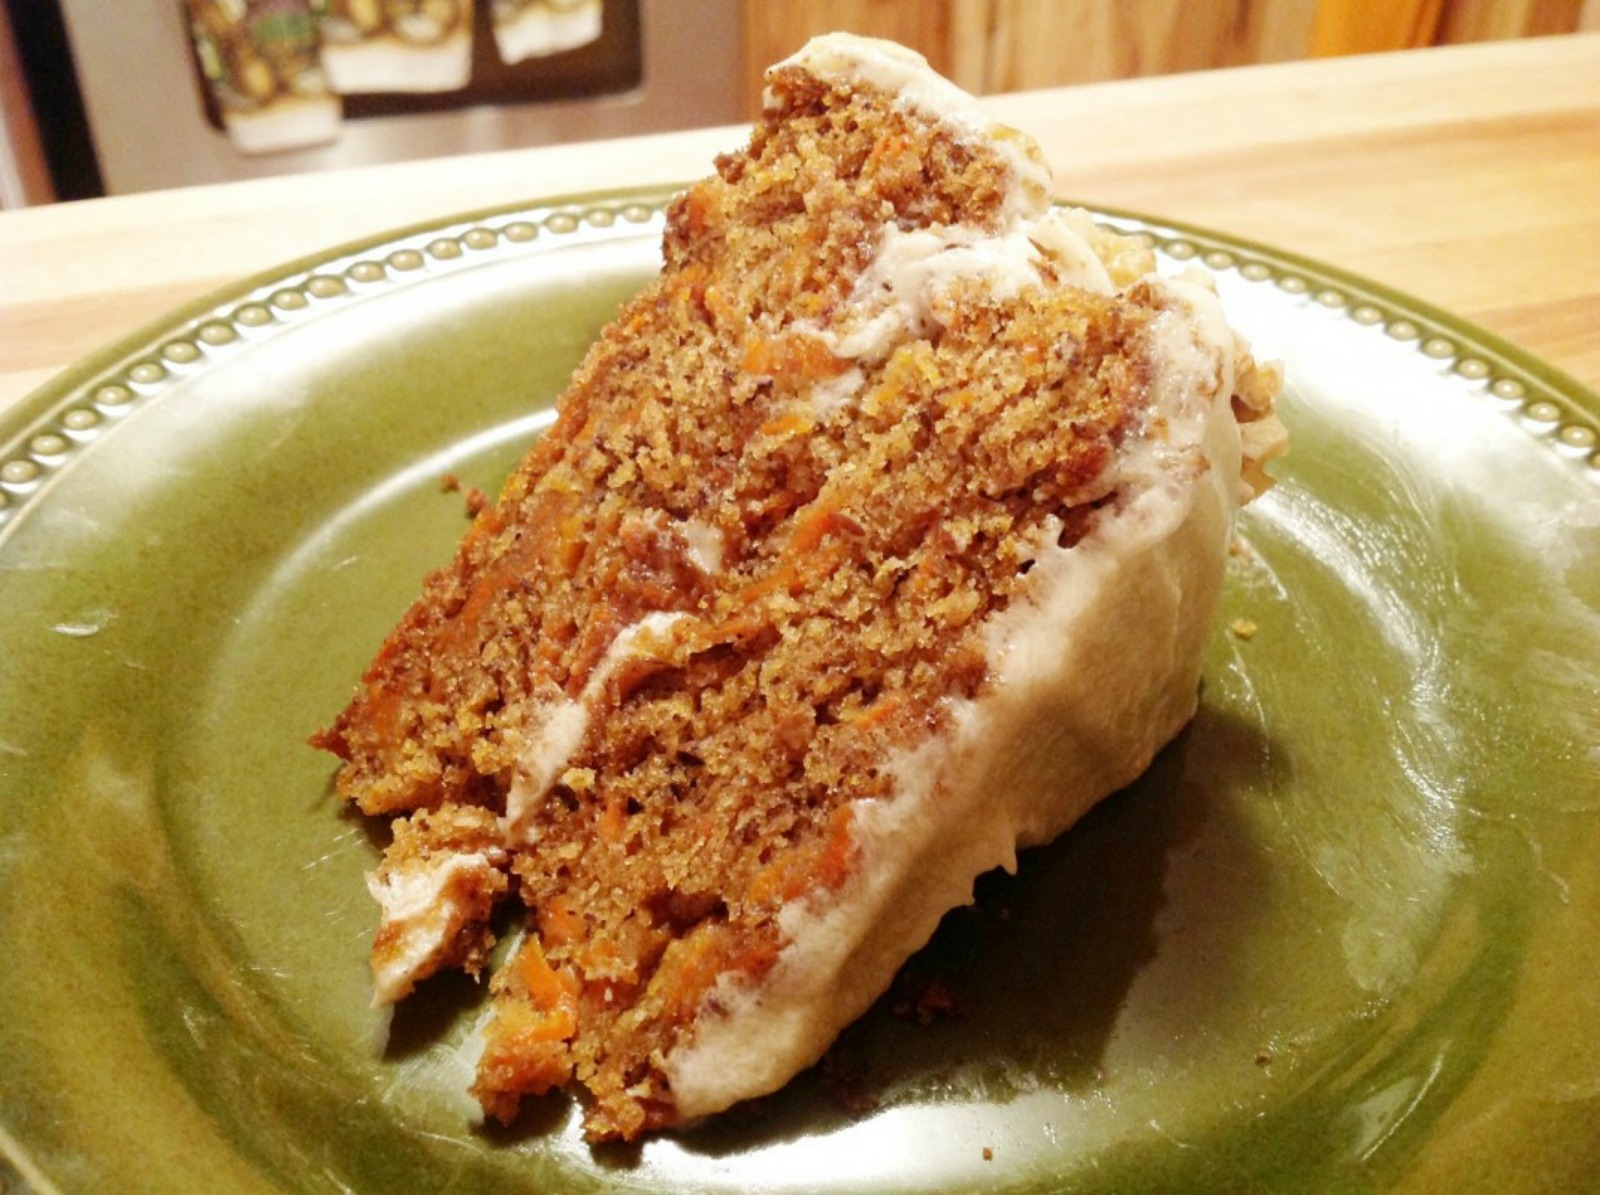 The Ultimate Gluten-Free Vegan Baking Substitution Guide - One Green Planet